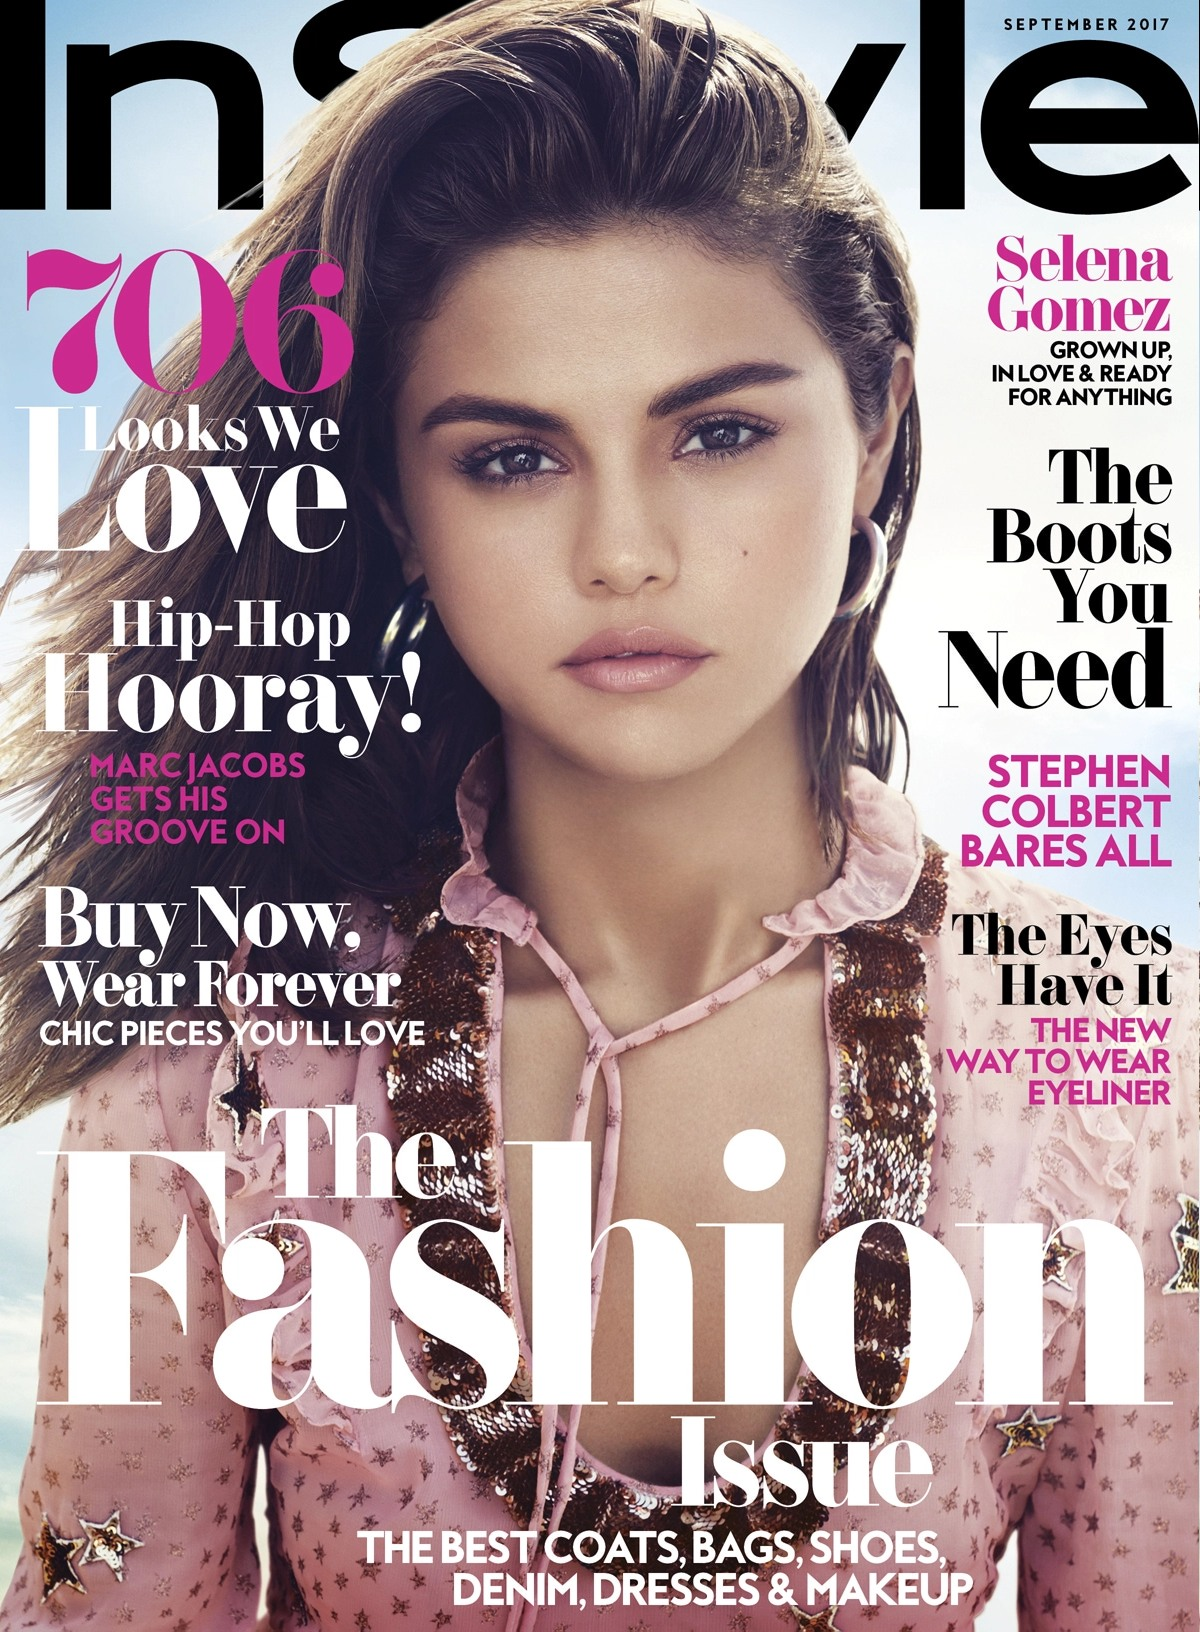 Selena Gomez: 'Ugly people' try to 'get negative things from you' on social media